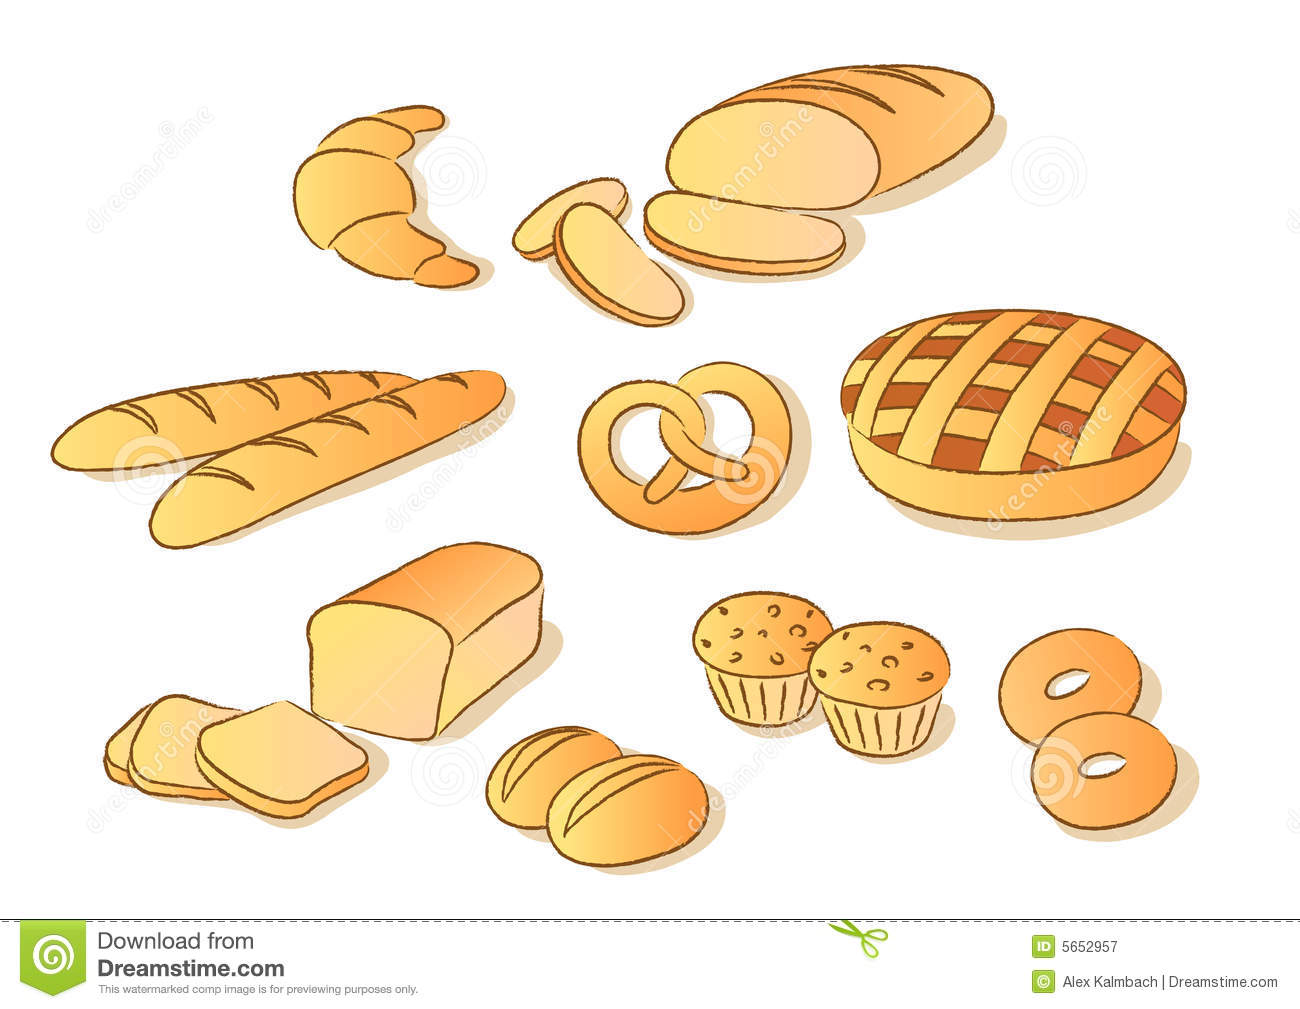 Bread Roll clipart french pastry Art Bread Clipart Images Panda